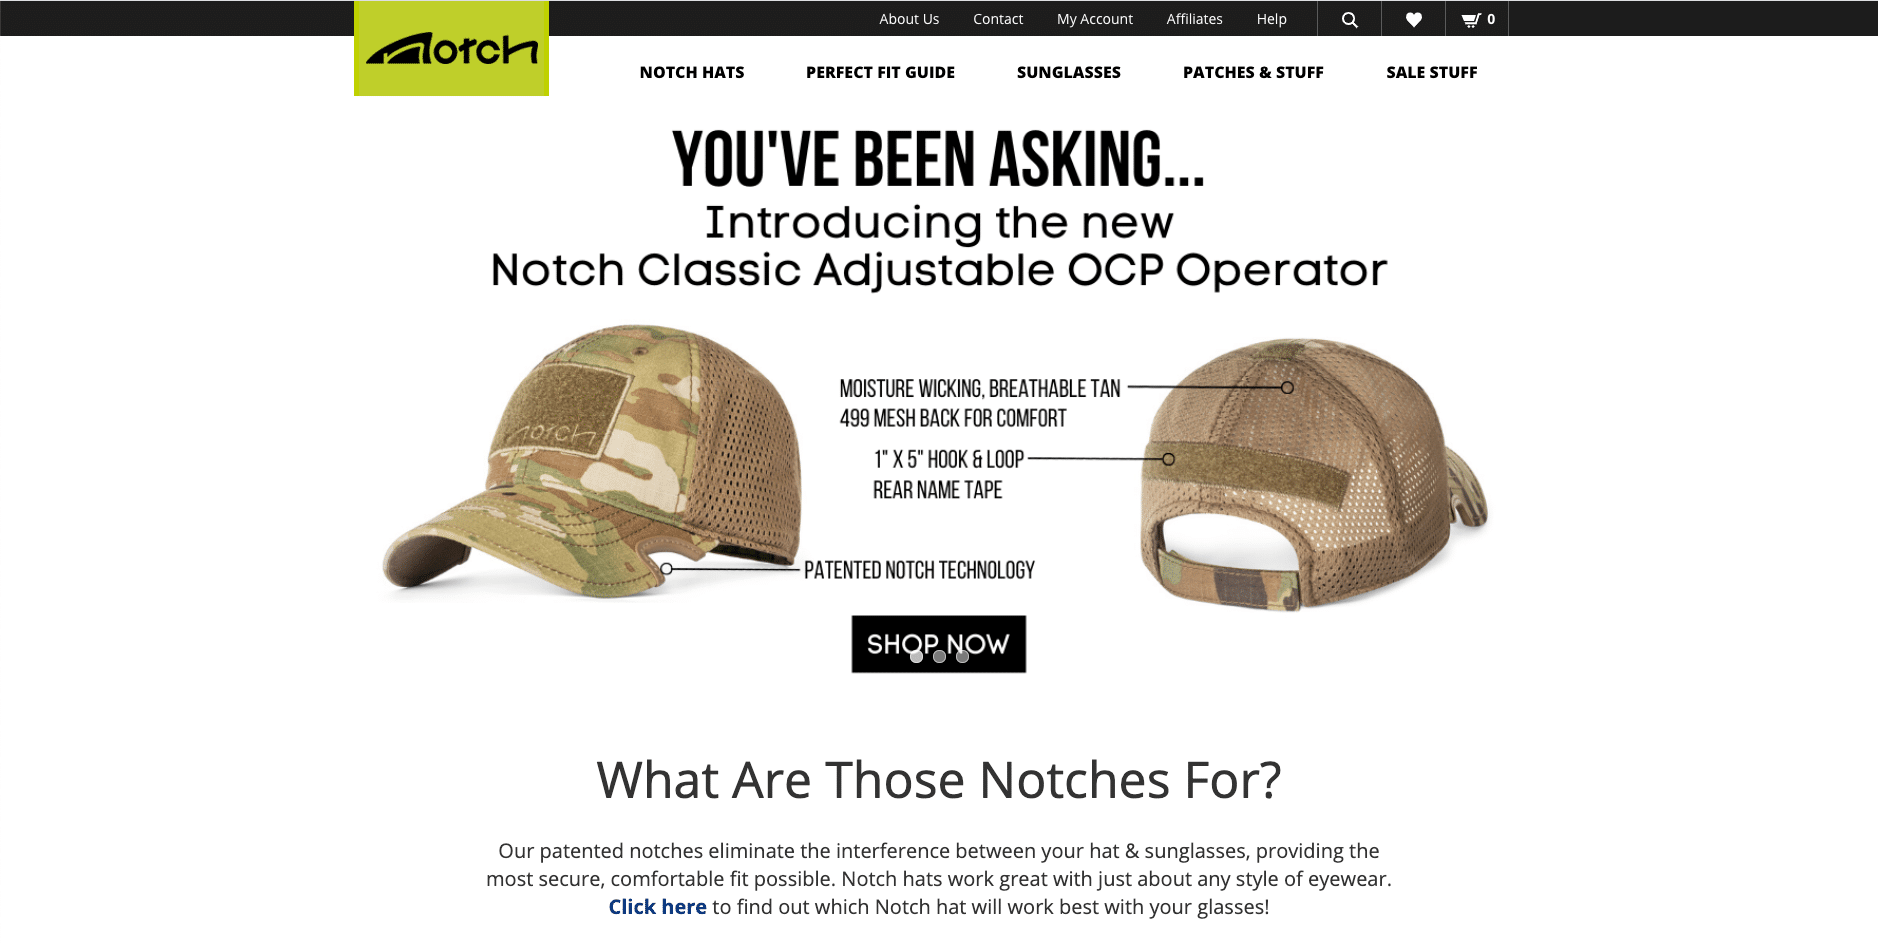 Notch, innovative hats for sunglasses